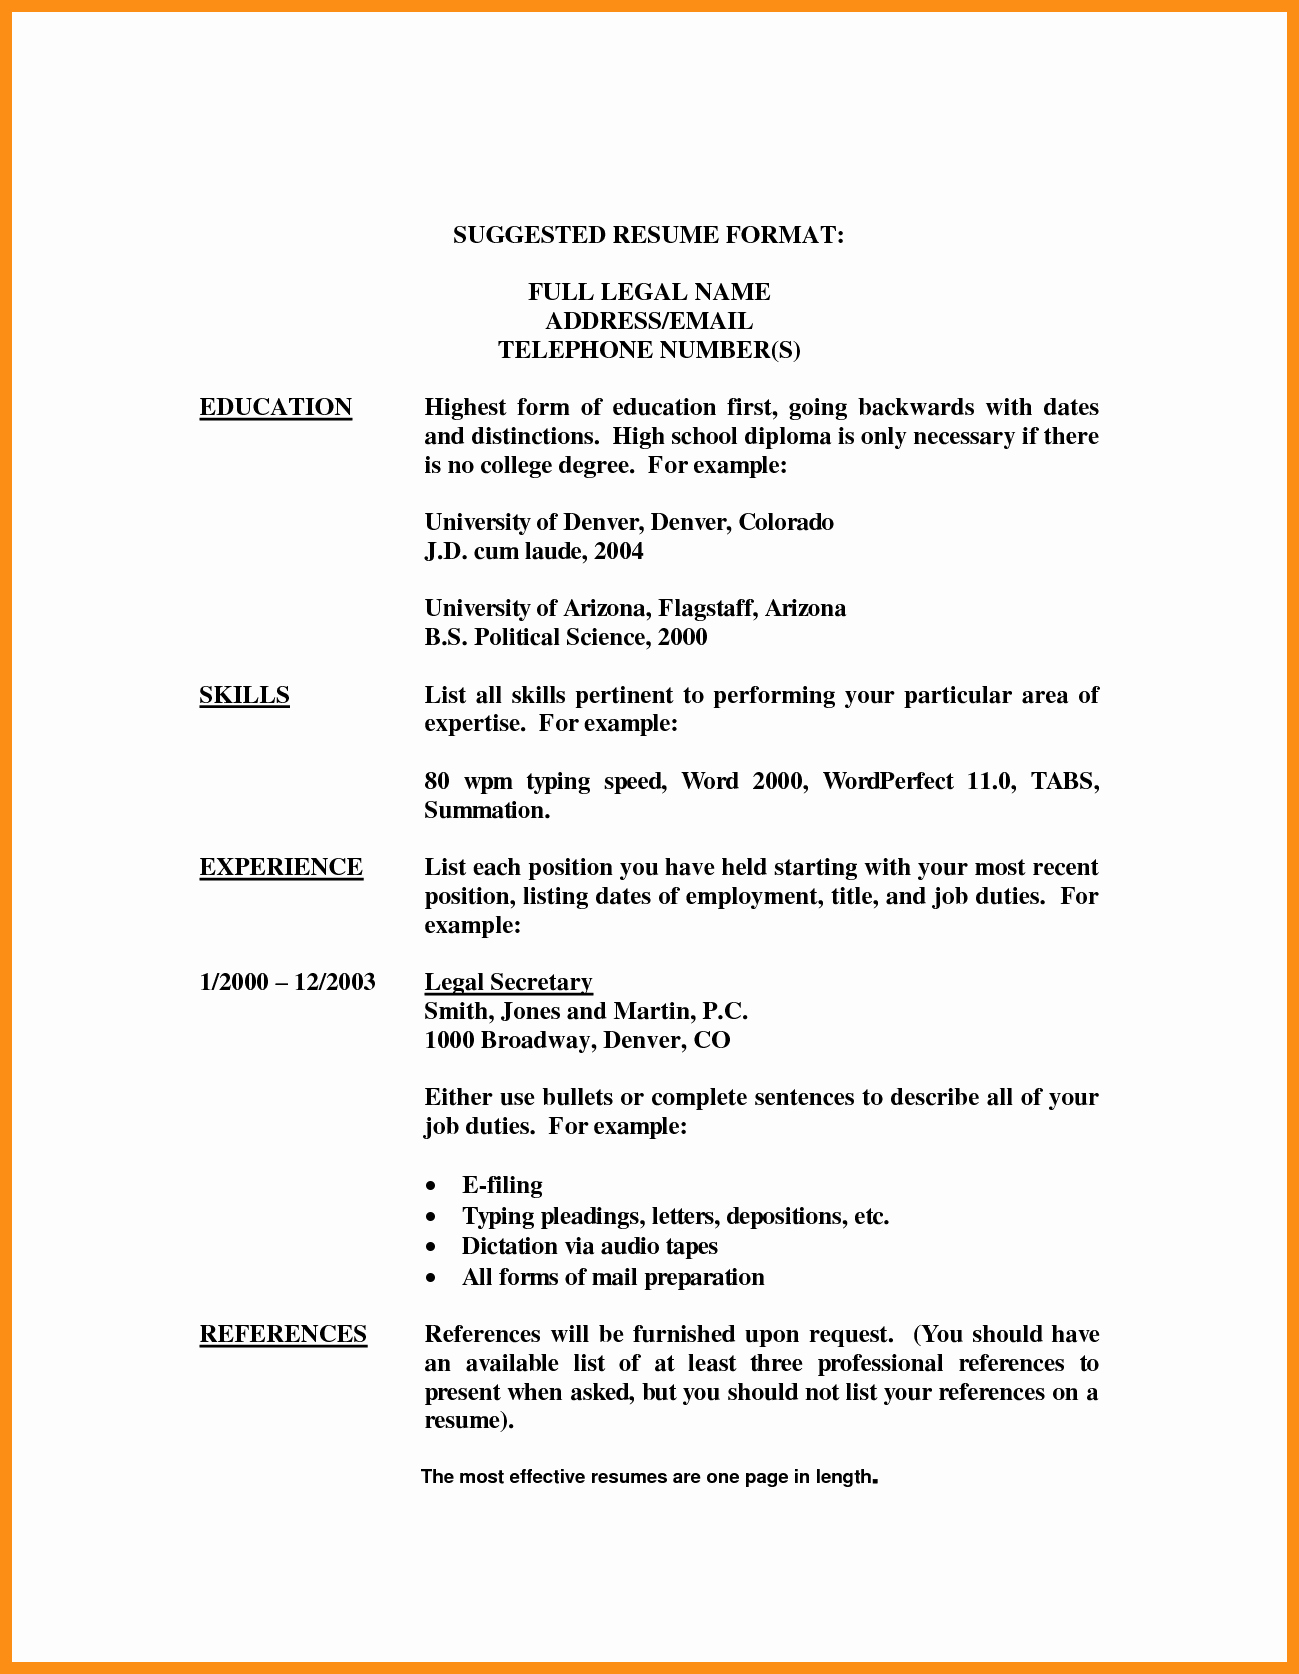 9 10 high school diploma on resume examples